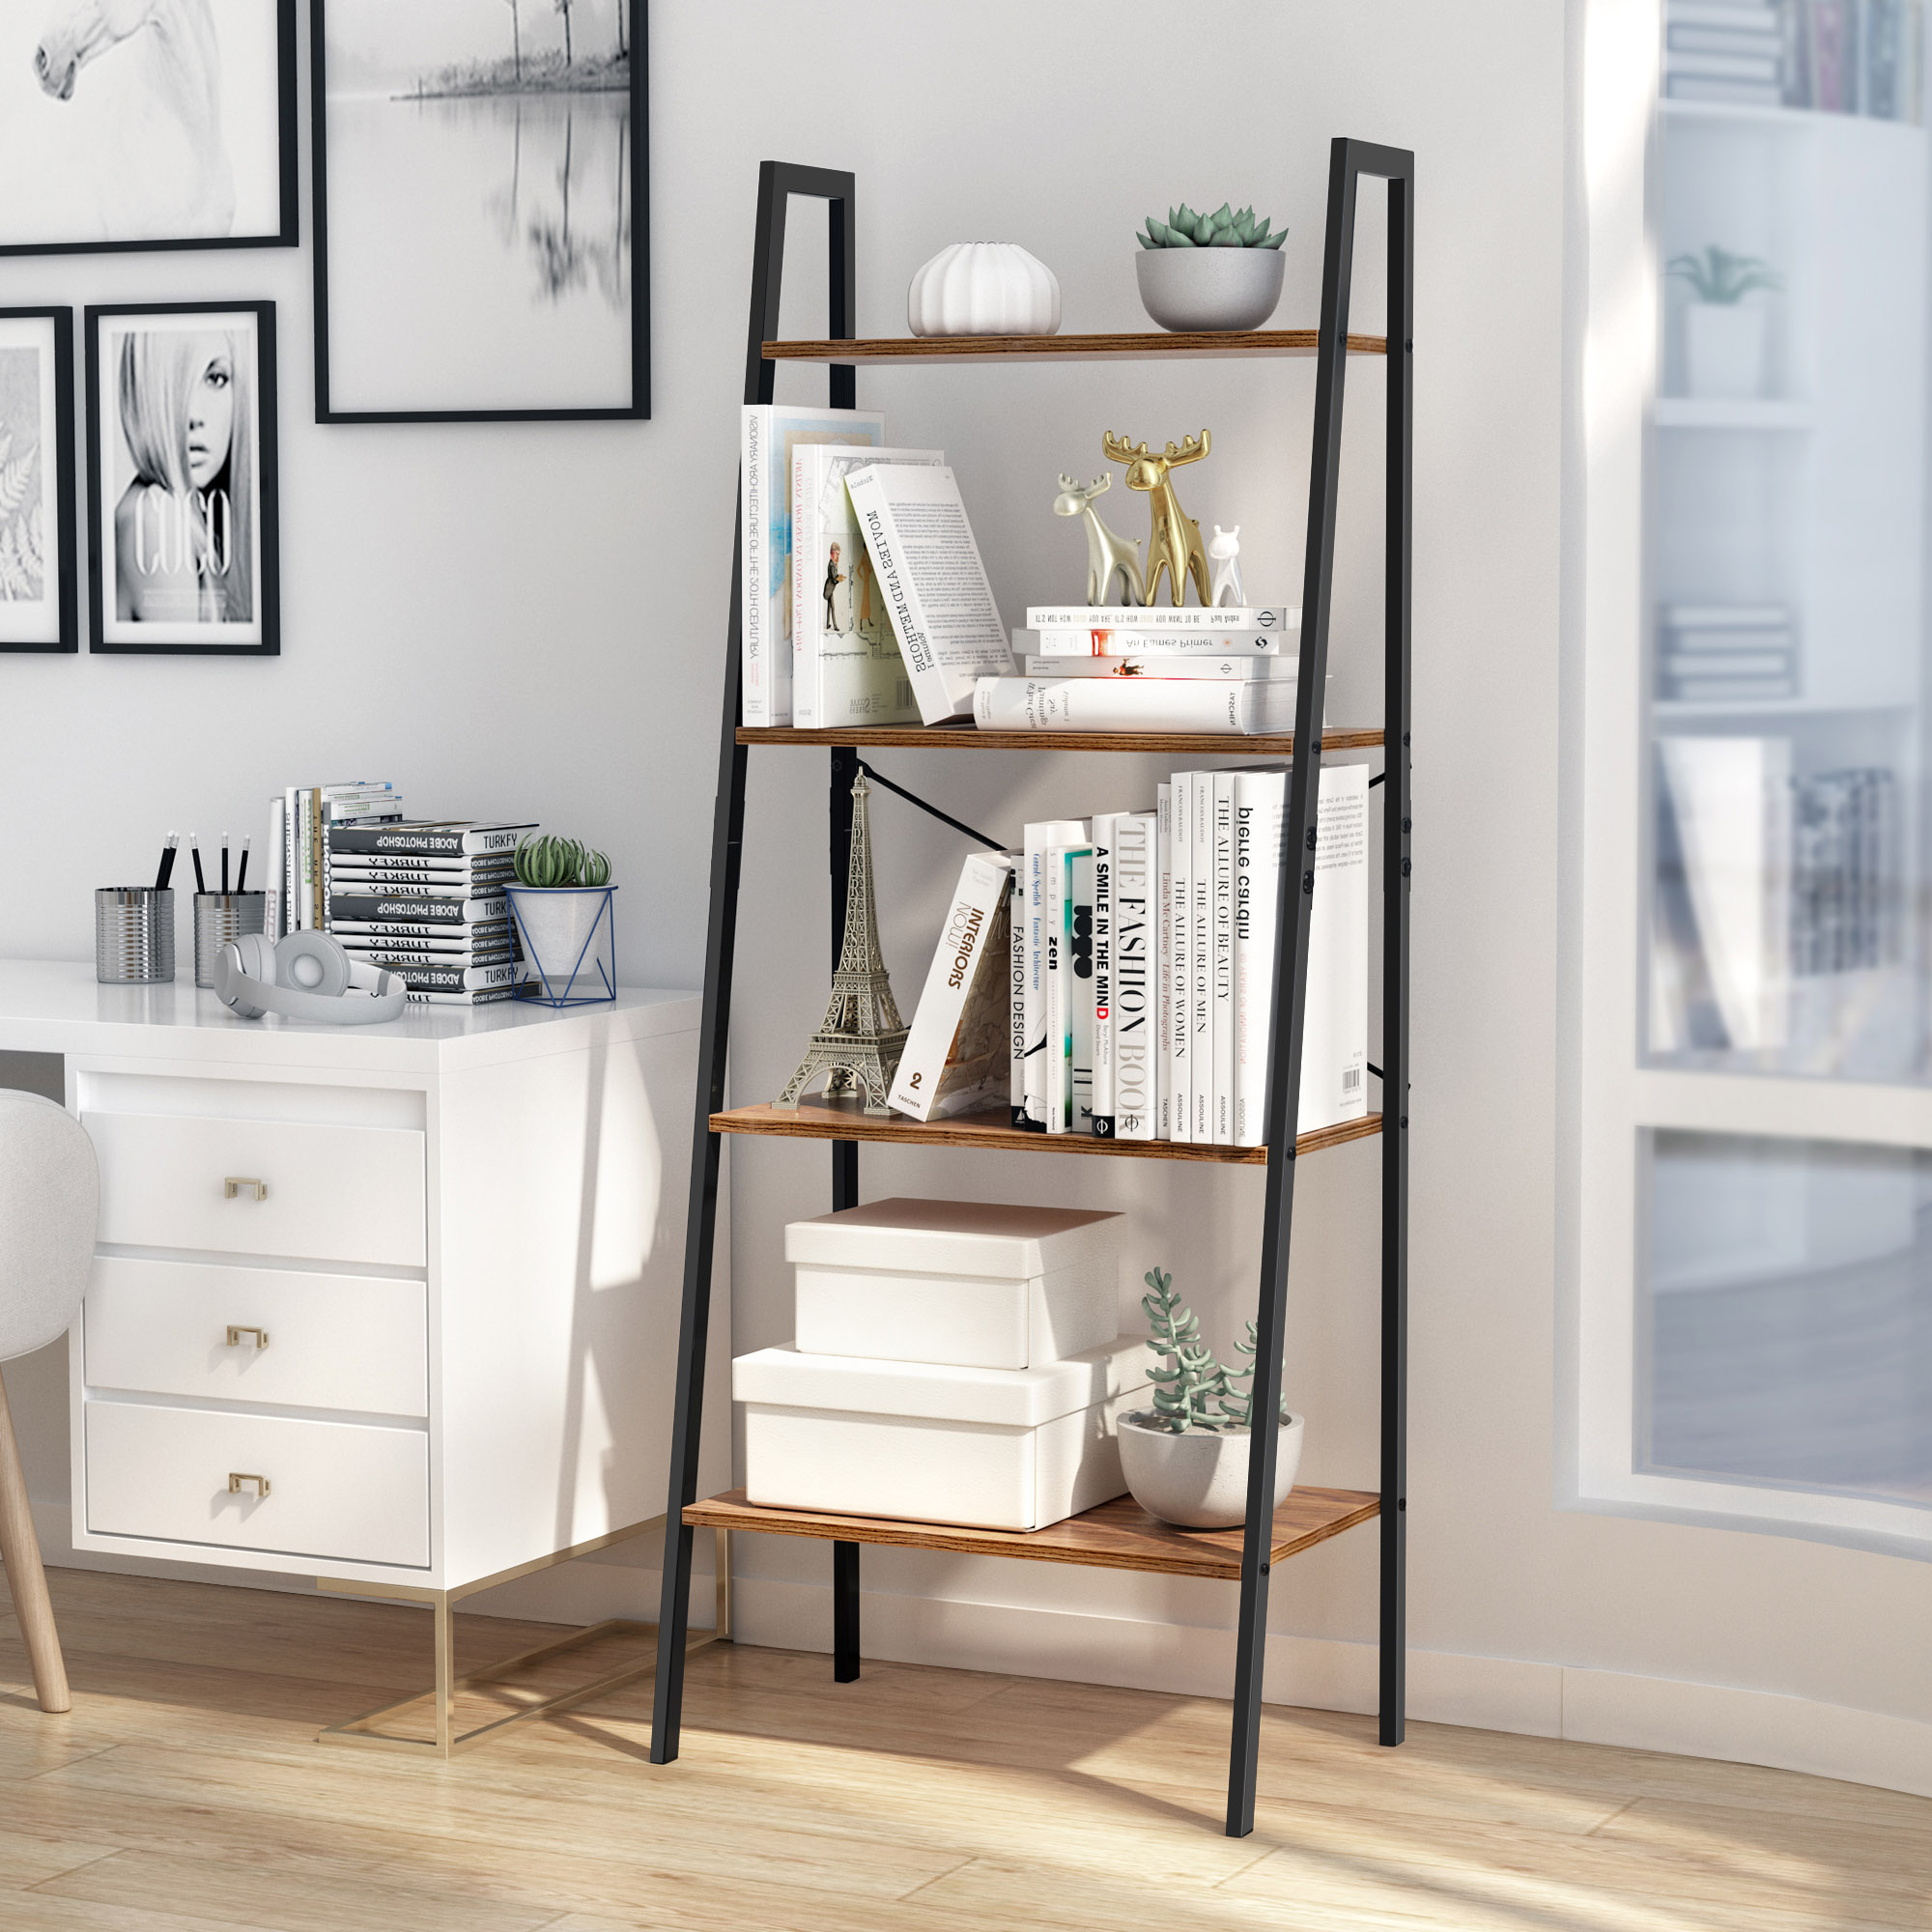 Details About 4 Tier Ladder Shelf Bookshelf Bookcase Storage Display Rack Leaning Home Office